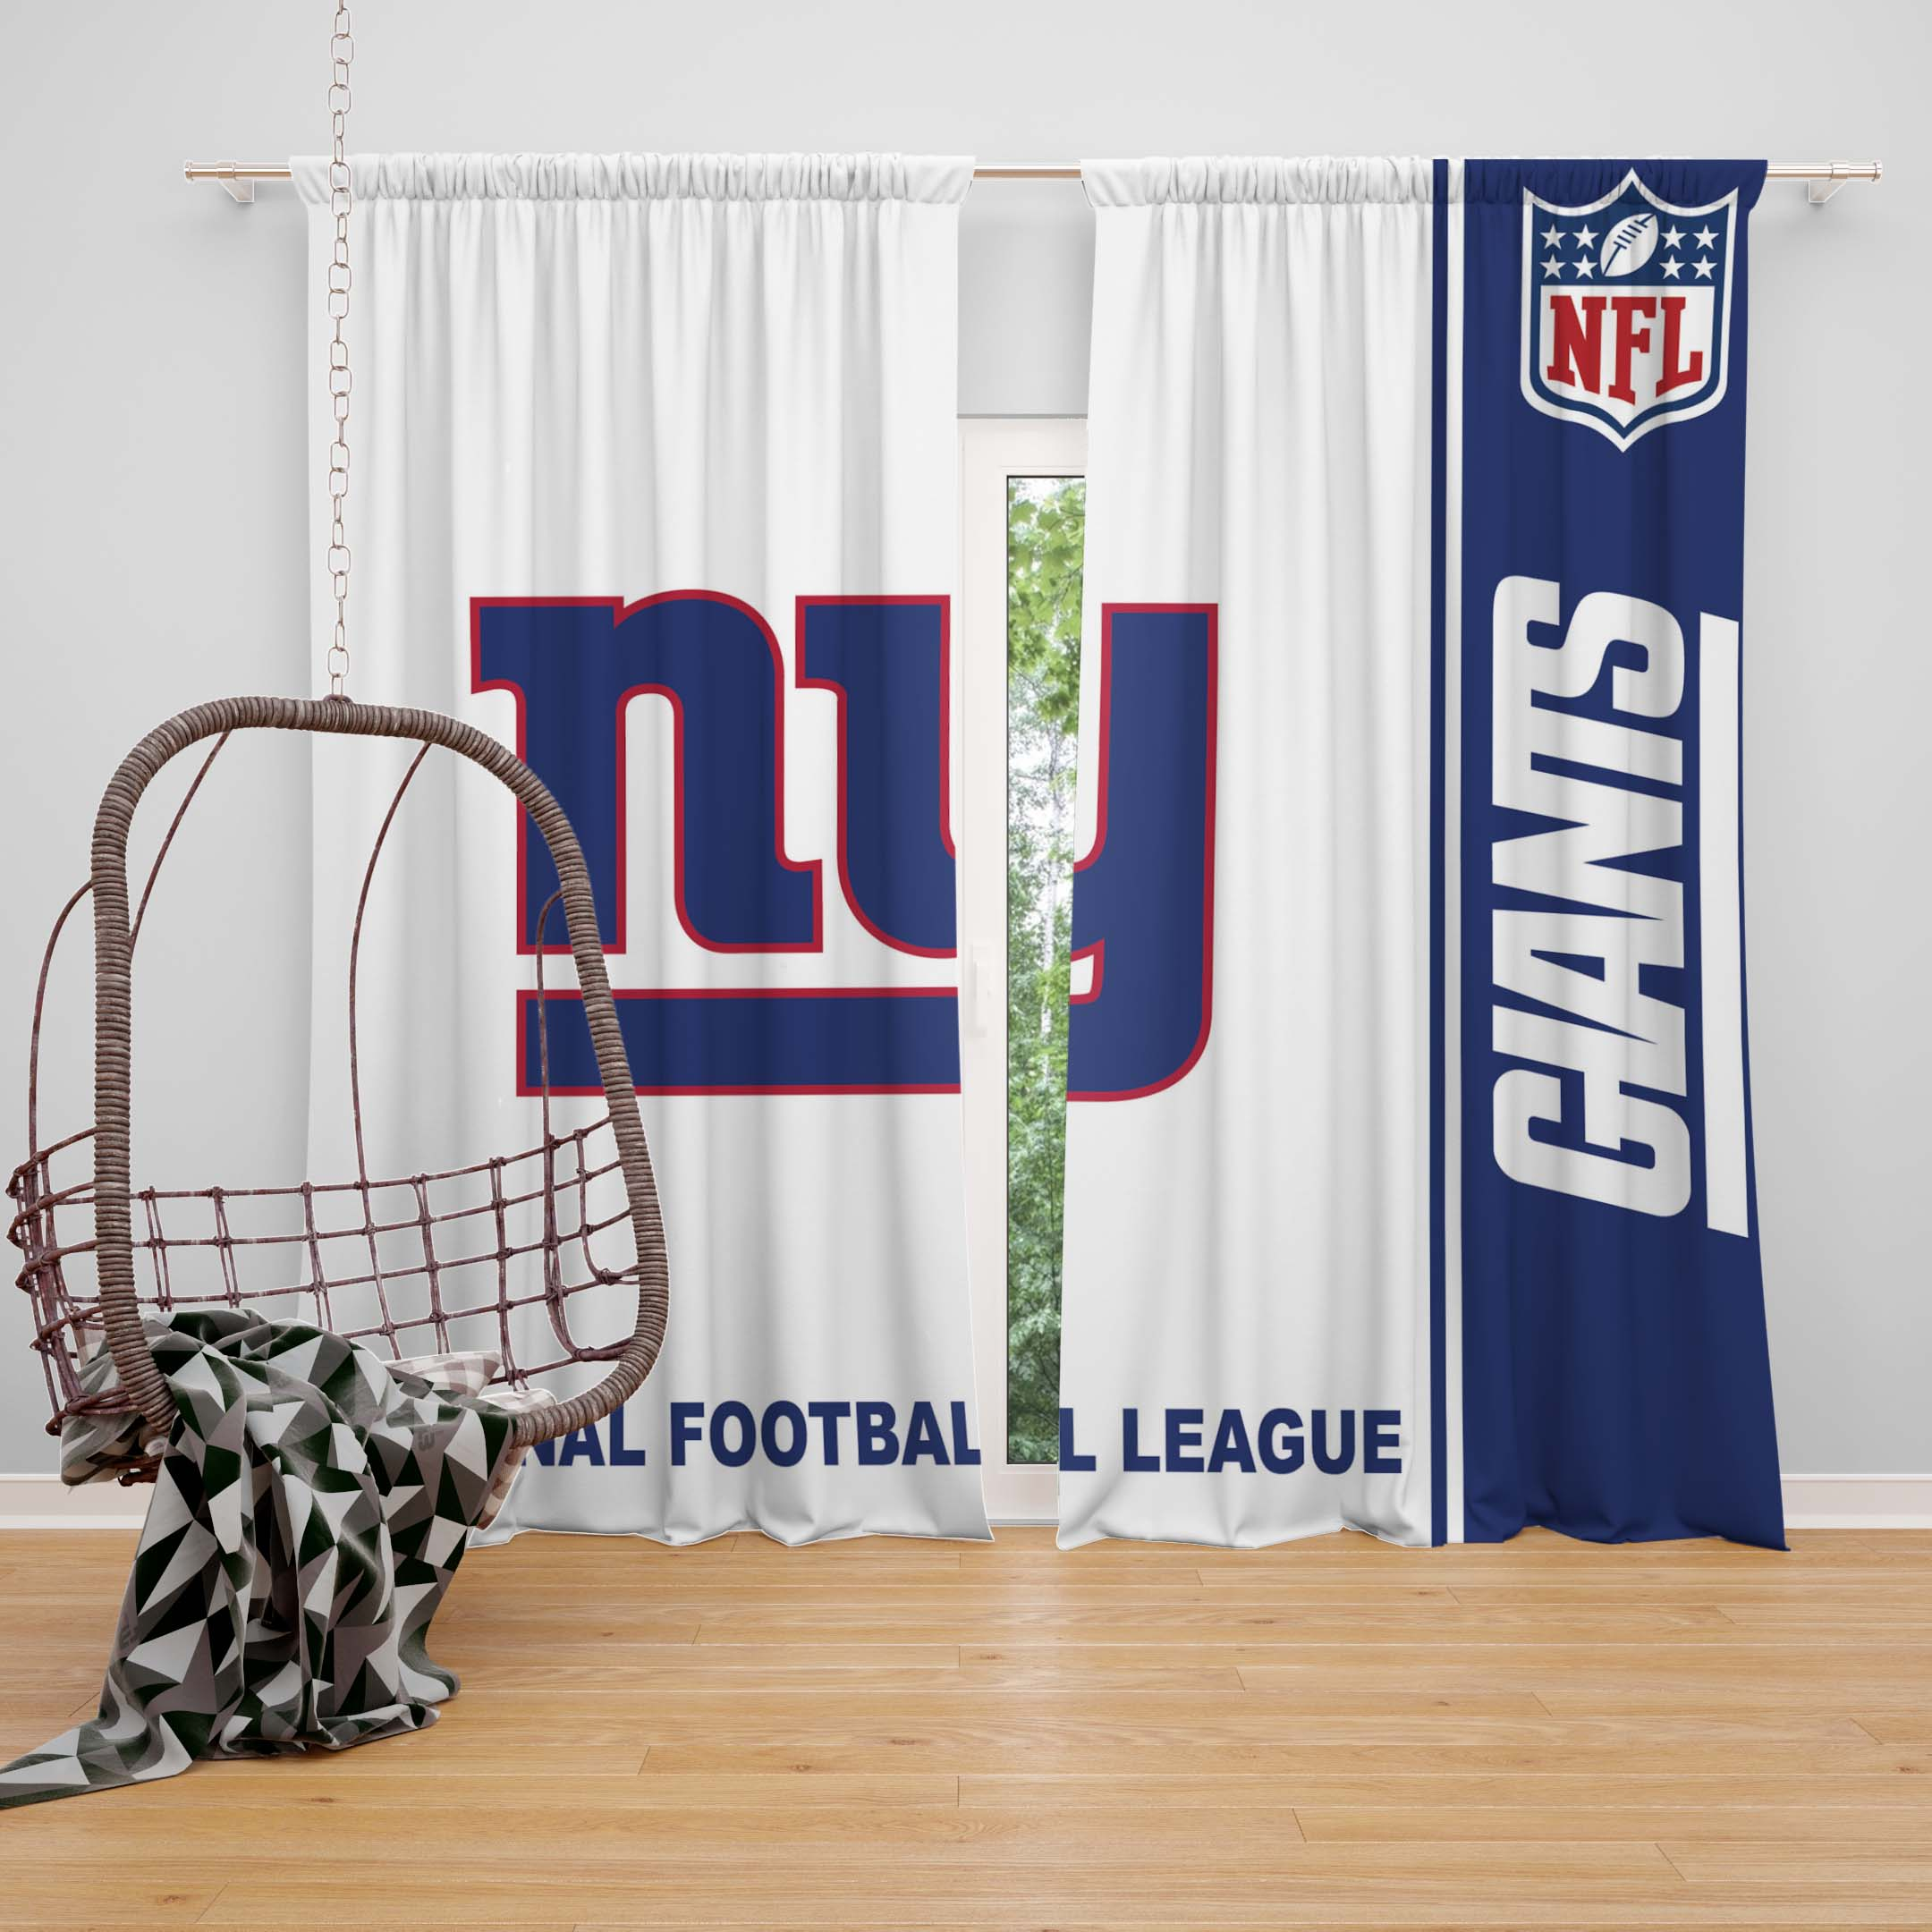 Nfl New York Giants Bedroom Curtain Ebeddingsets